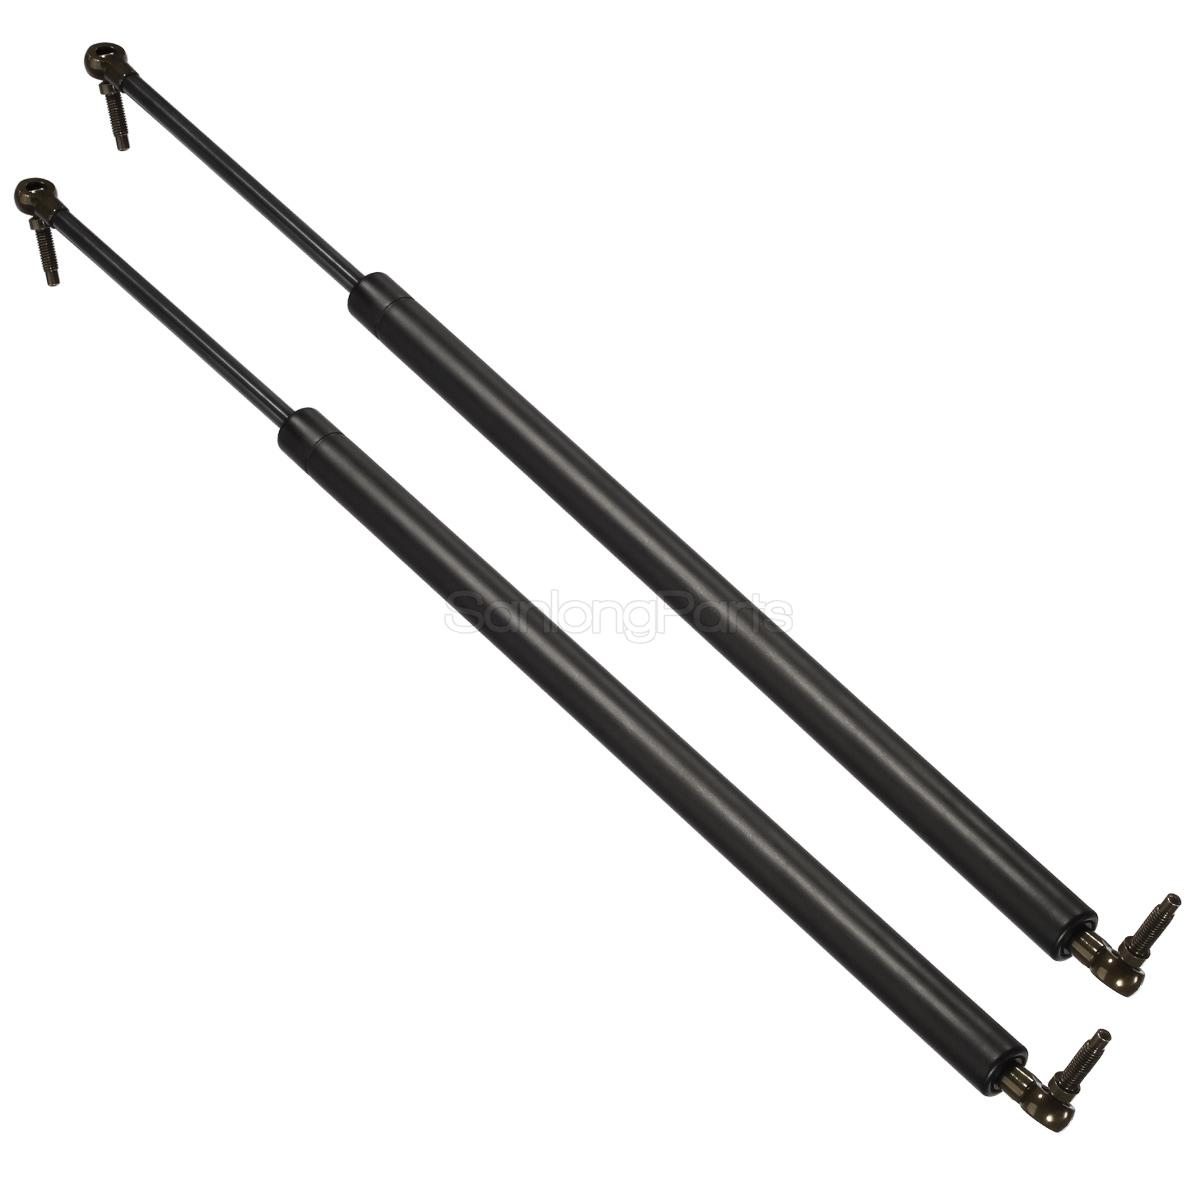 2pcs Hatch Gas Charged Lift Support For Chrysler Town